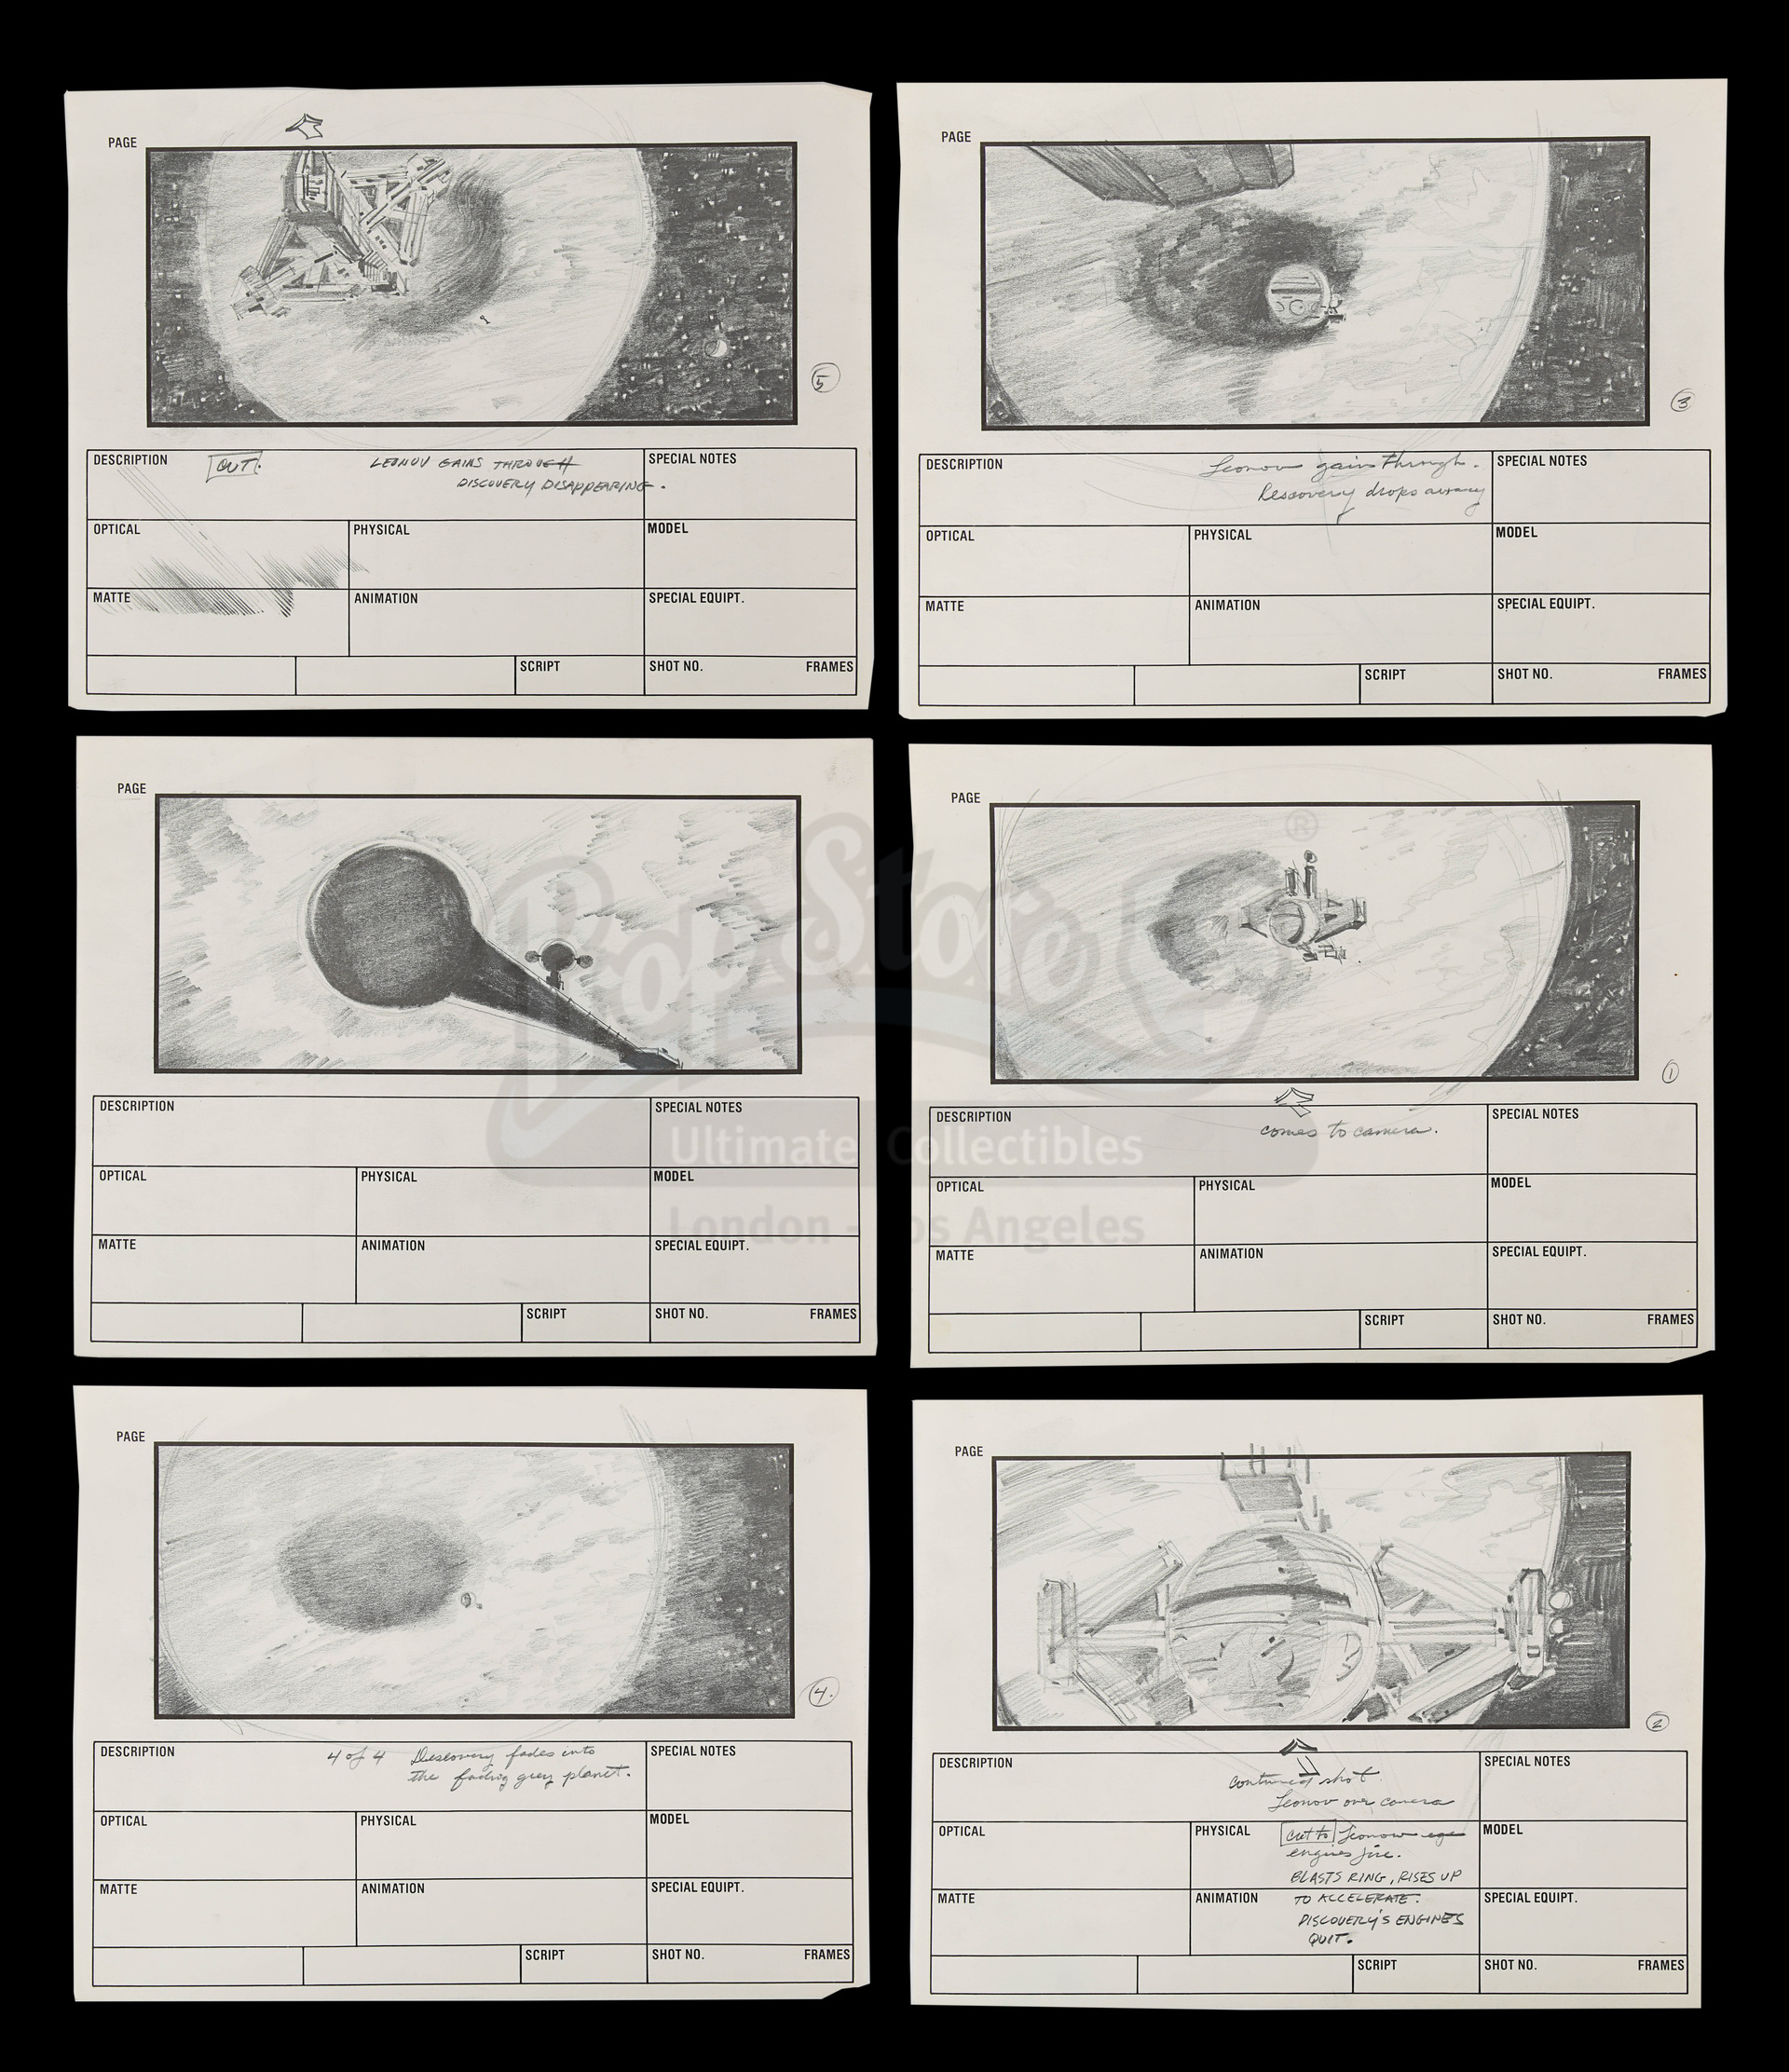 2010: THE YEAR WE MAKE CONTACT (1985) - Hand-Drawn Storyboards: Jupiter Escape